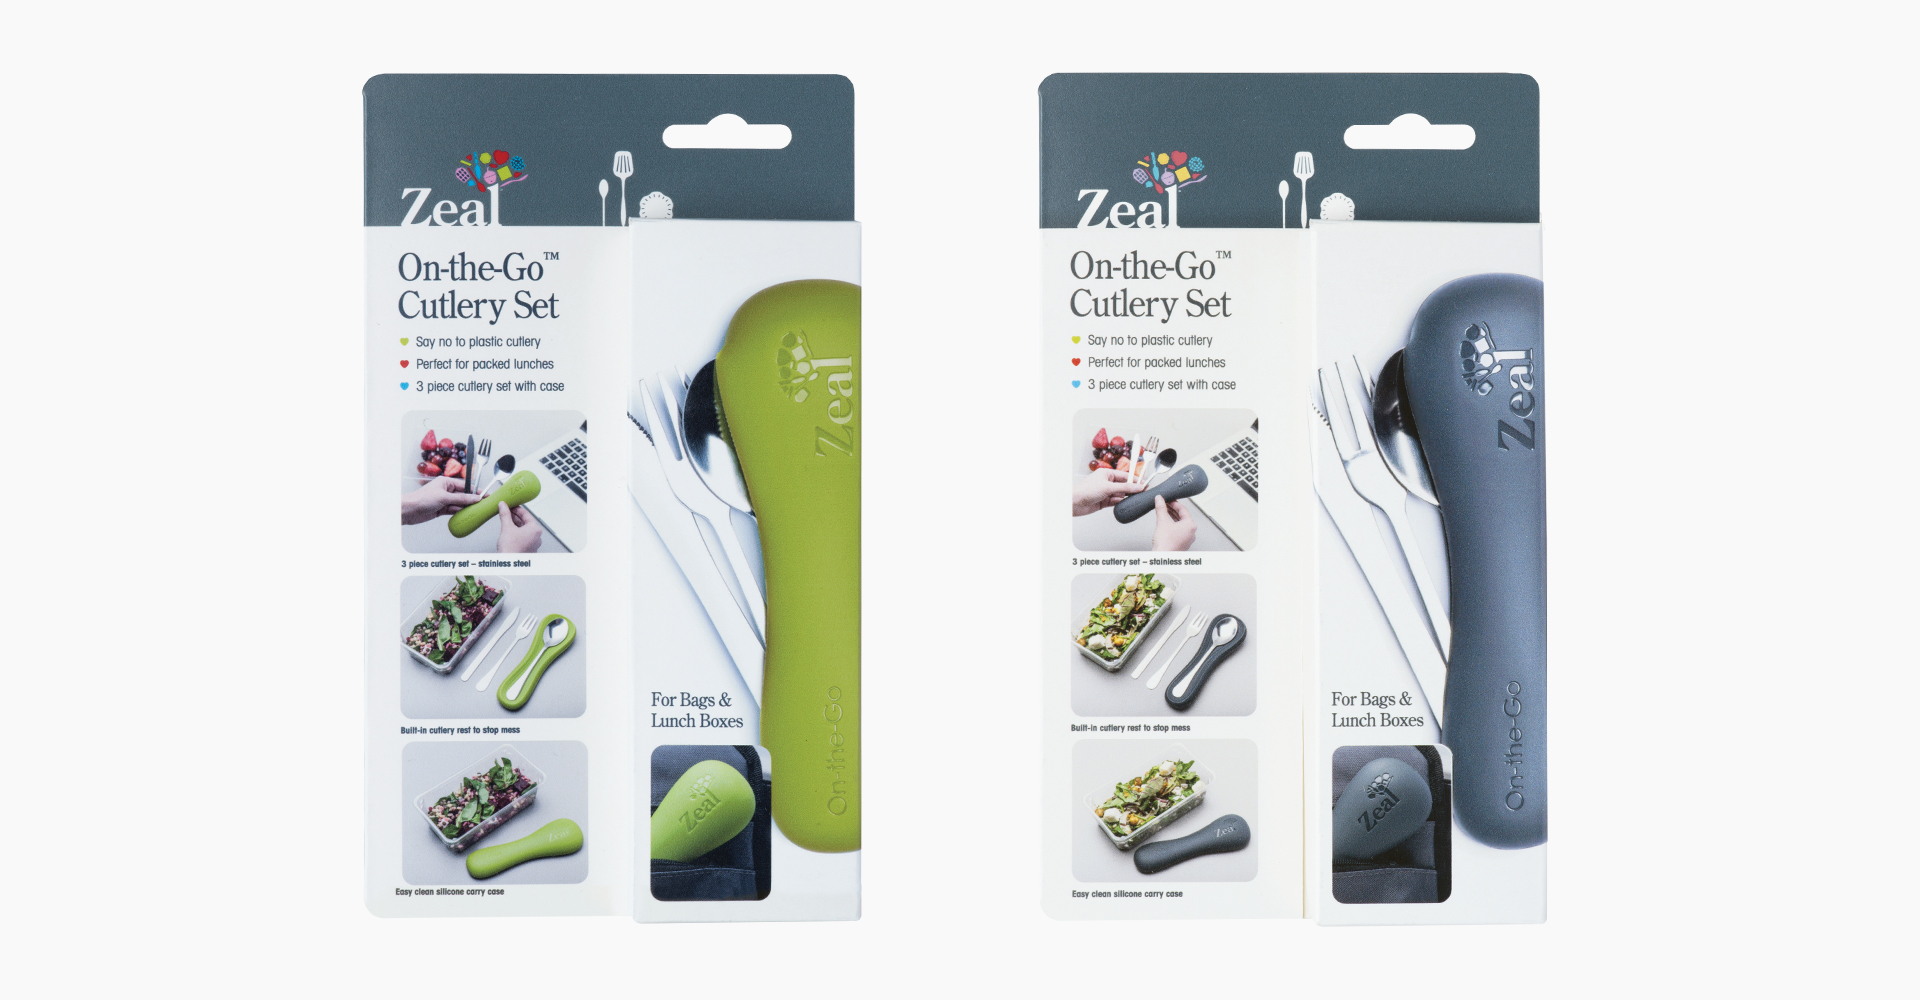 CKS Zeal 2018 range| On-the-go cutlery pouch - CKS - Zeal - Packaging - Graphics - Design - Card - Graphic Design - Product - Marketing